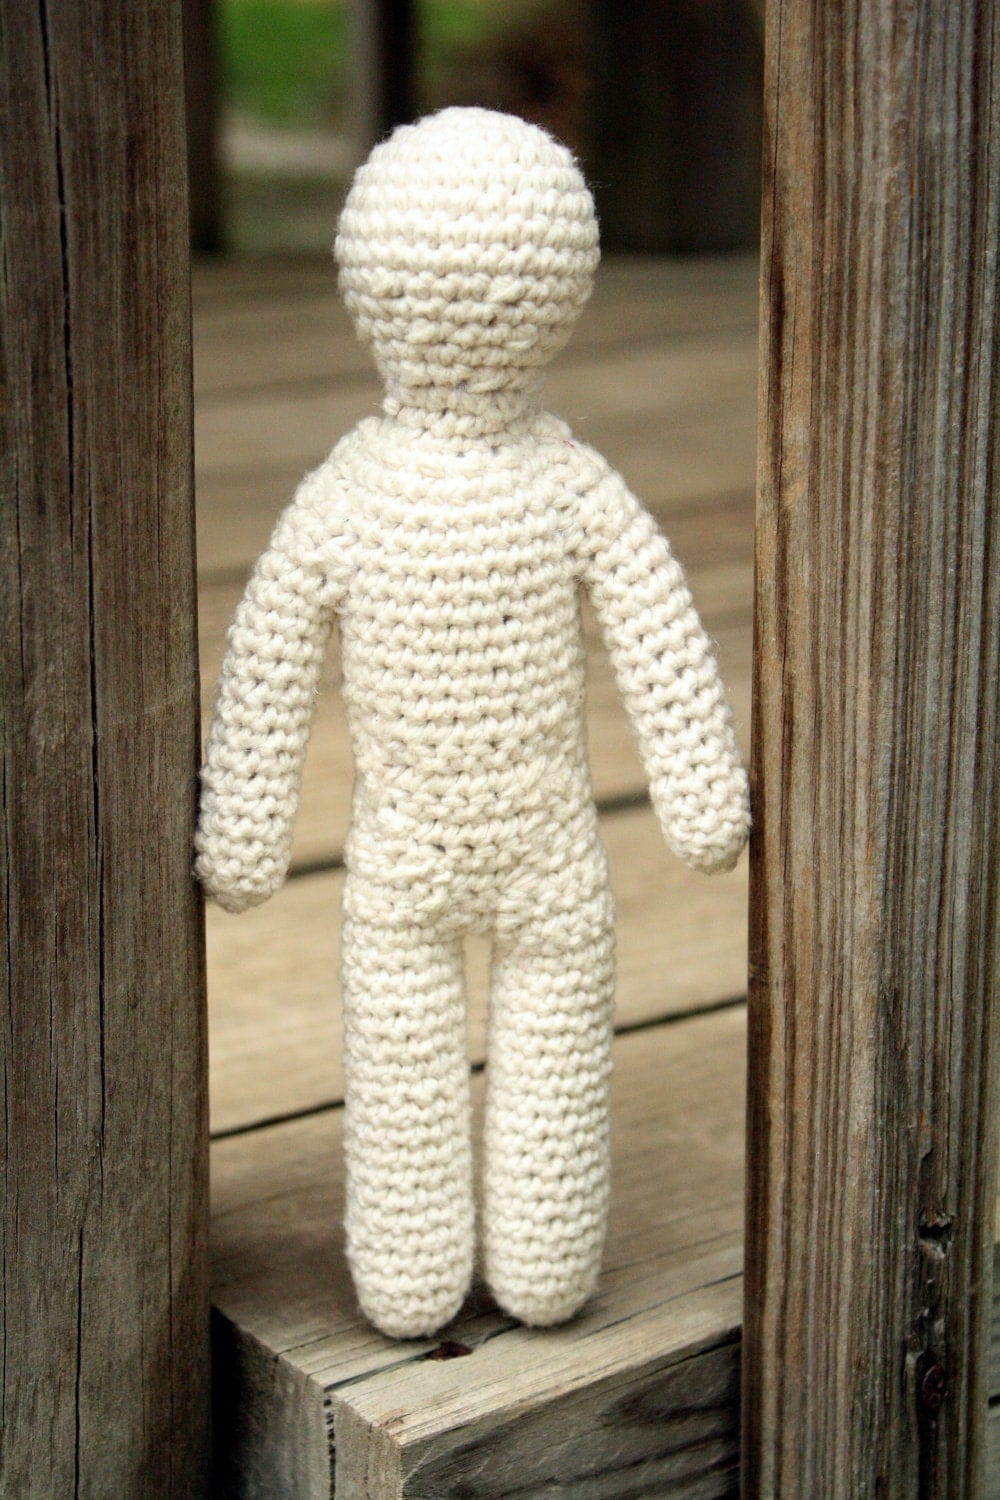 Crochet Amigurumi Doll Body : Items similar to One-Skein Doll Body Amigurumi Style (PDF ...